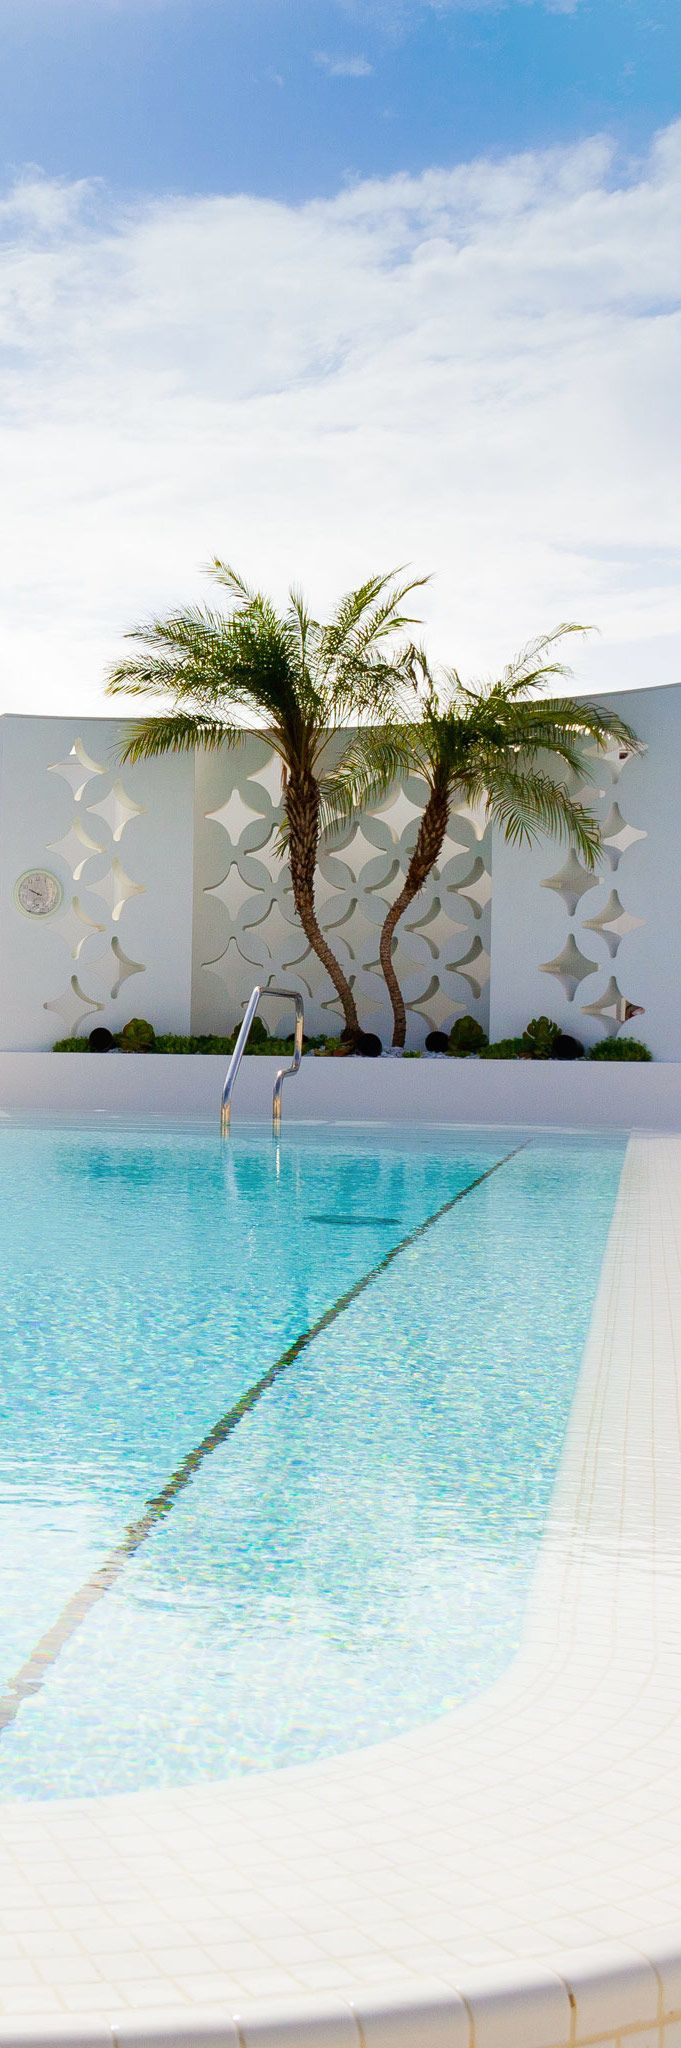 147 best images about retro concrete wall screen designs - Palm beach pool ...